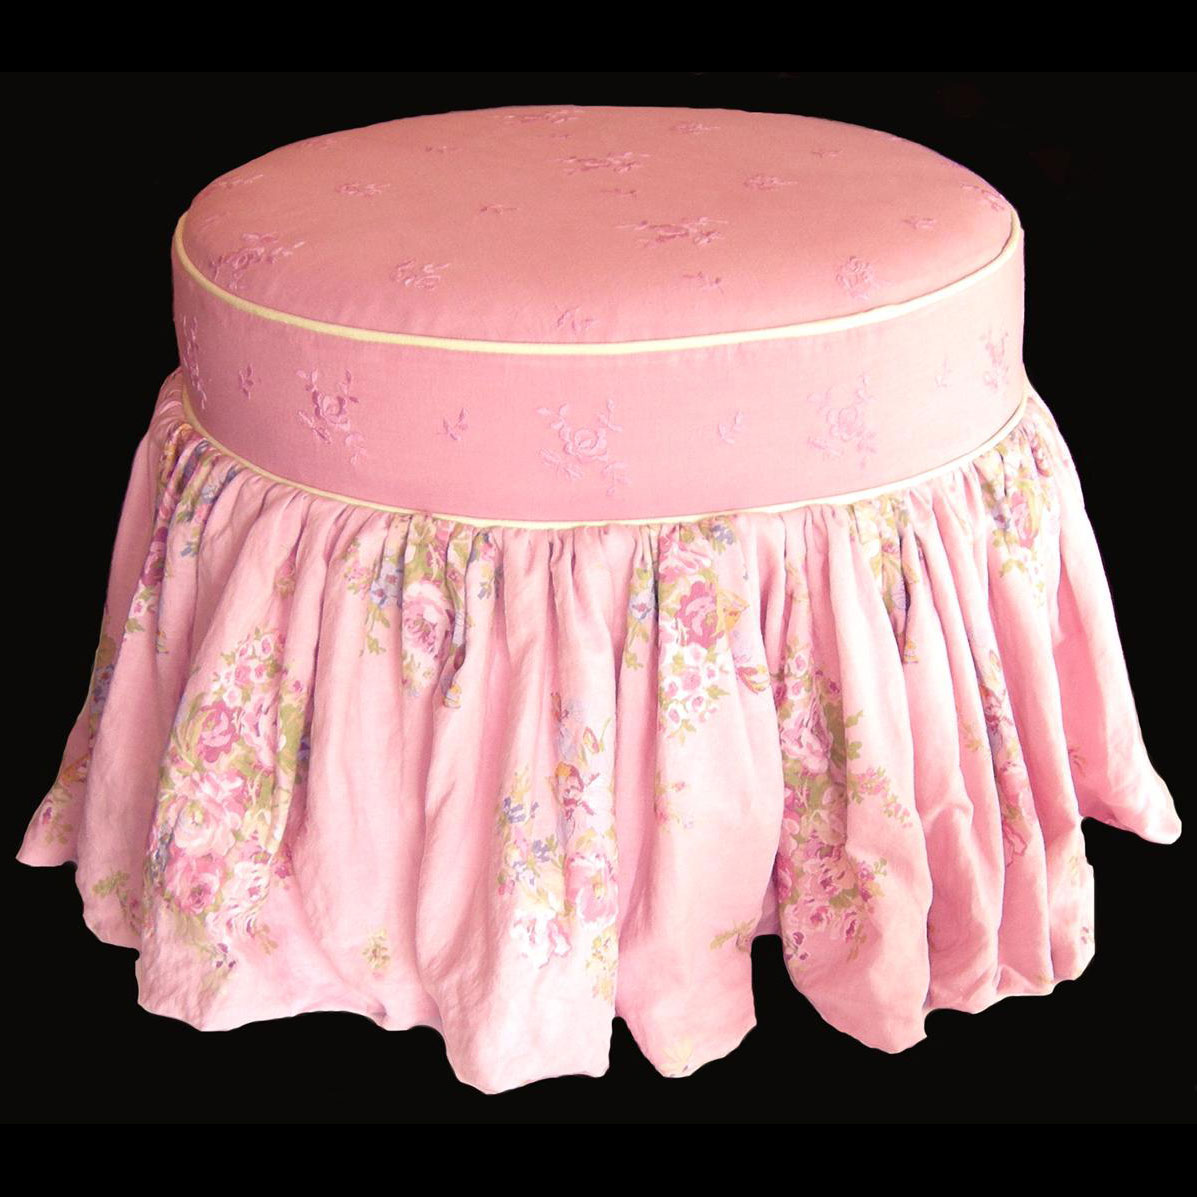 Appealing Tuffet | Unique Tuffet Stool